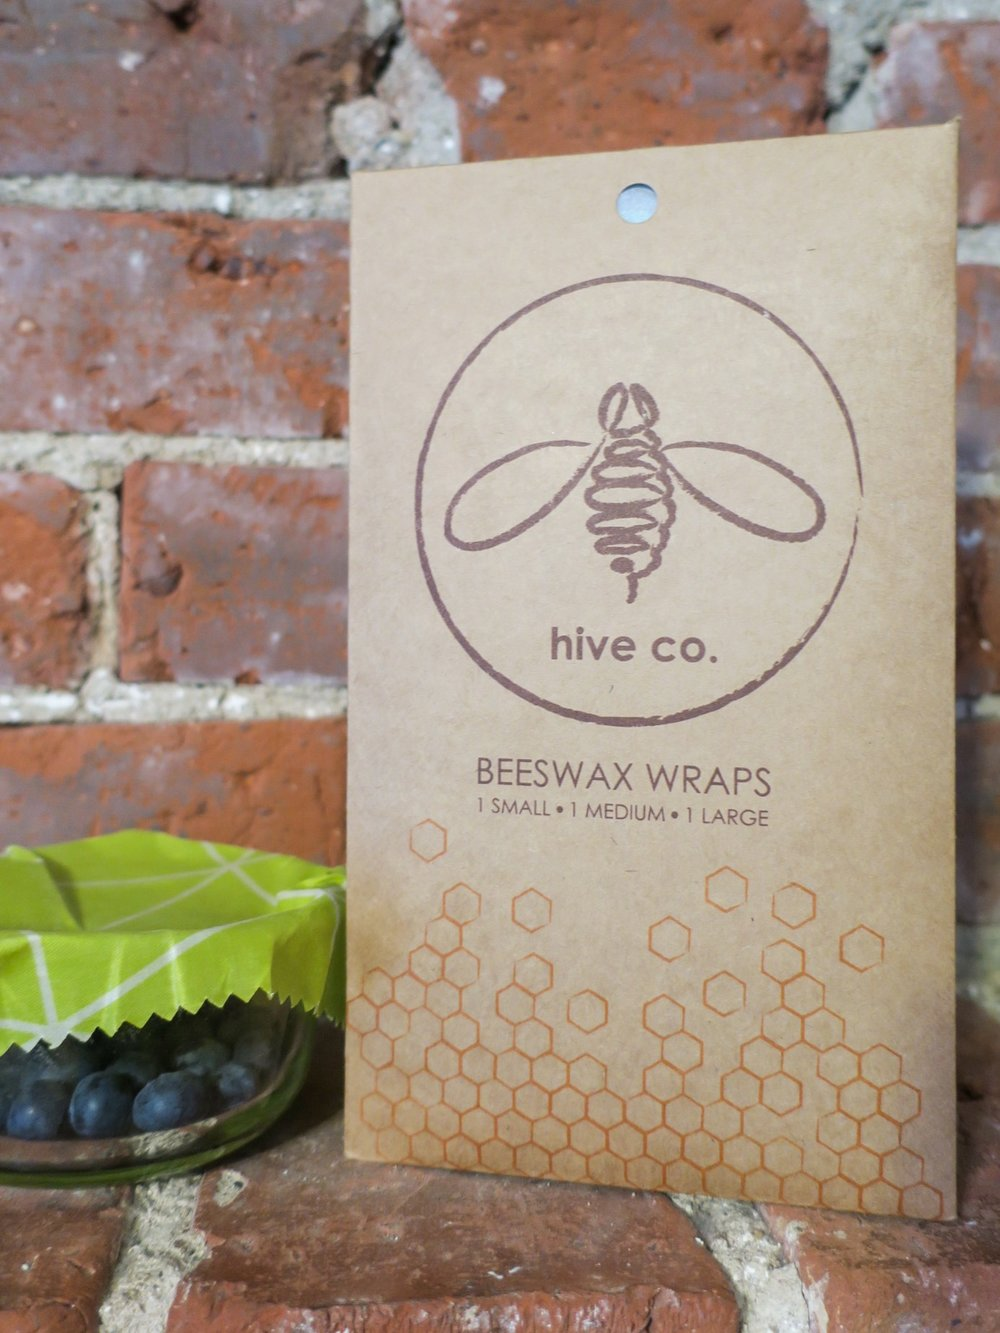 beeswax food wrap.JPEG